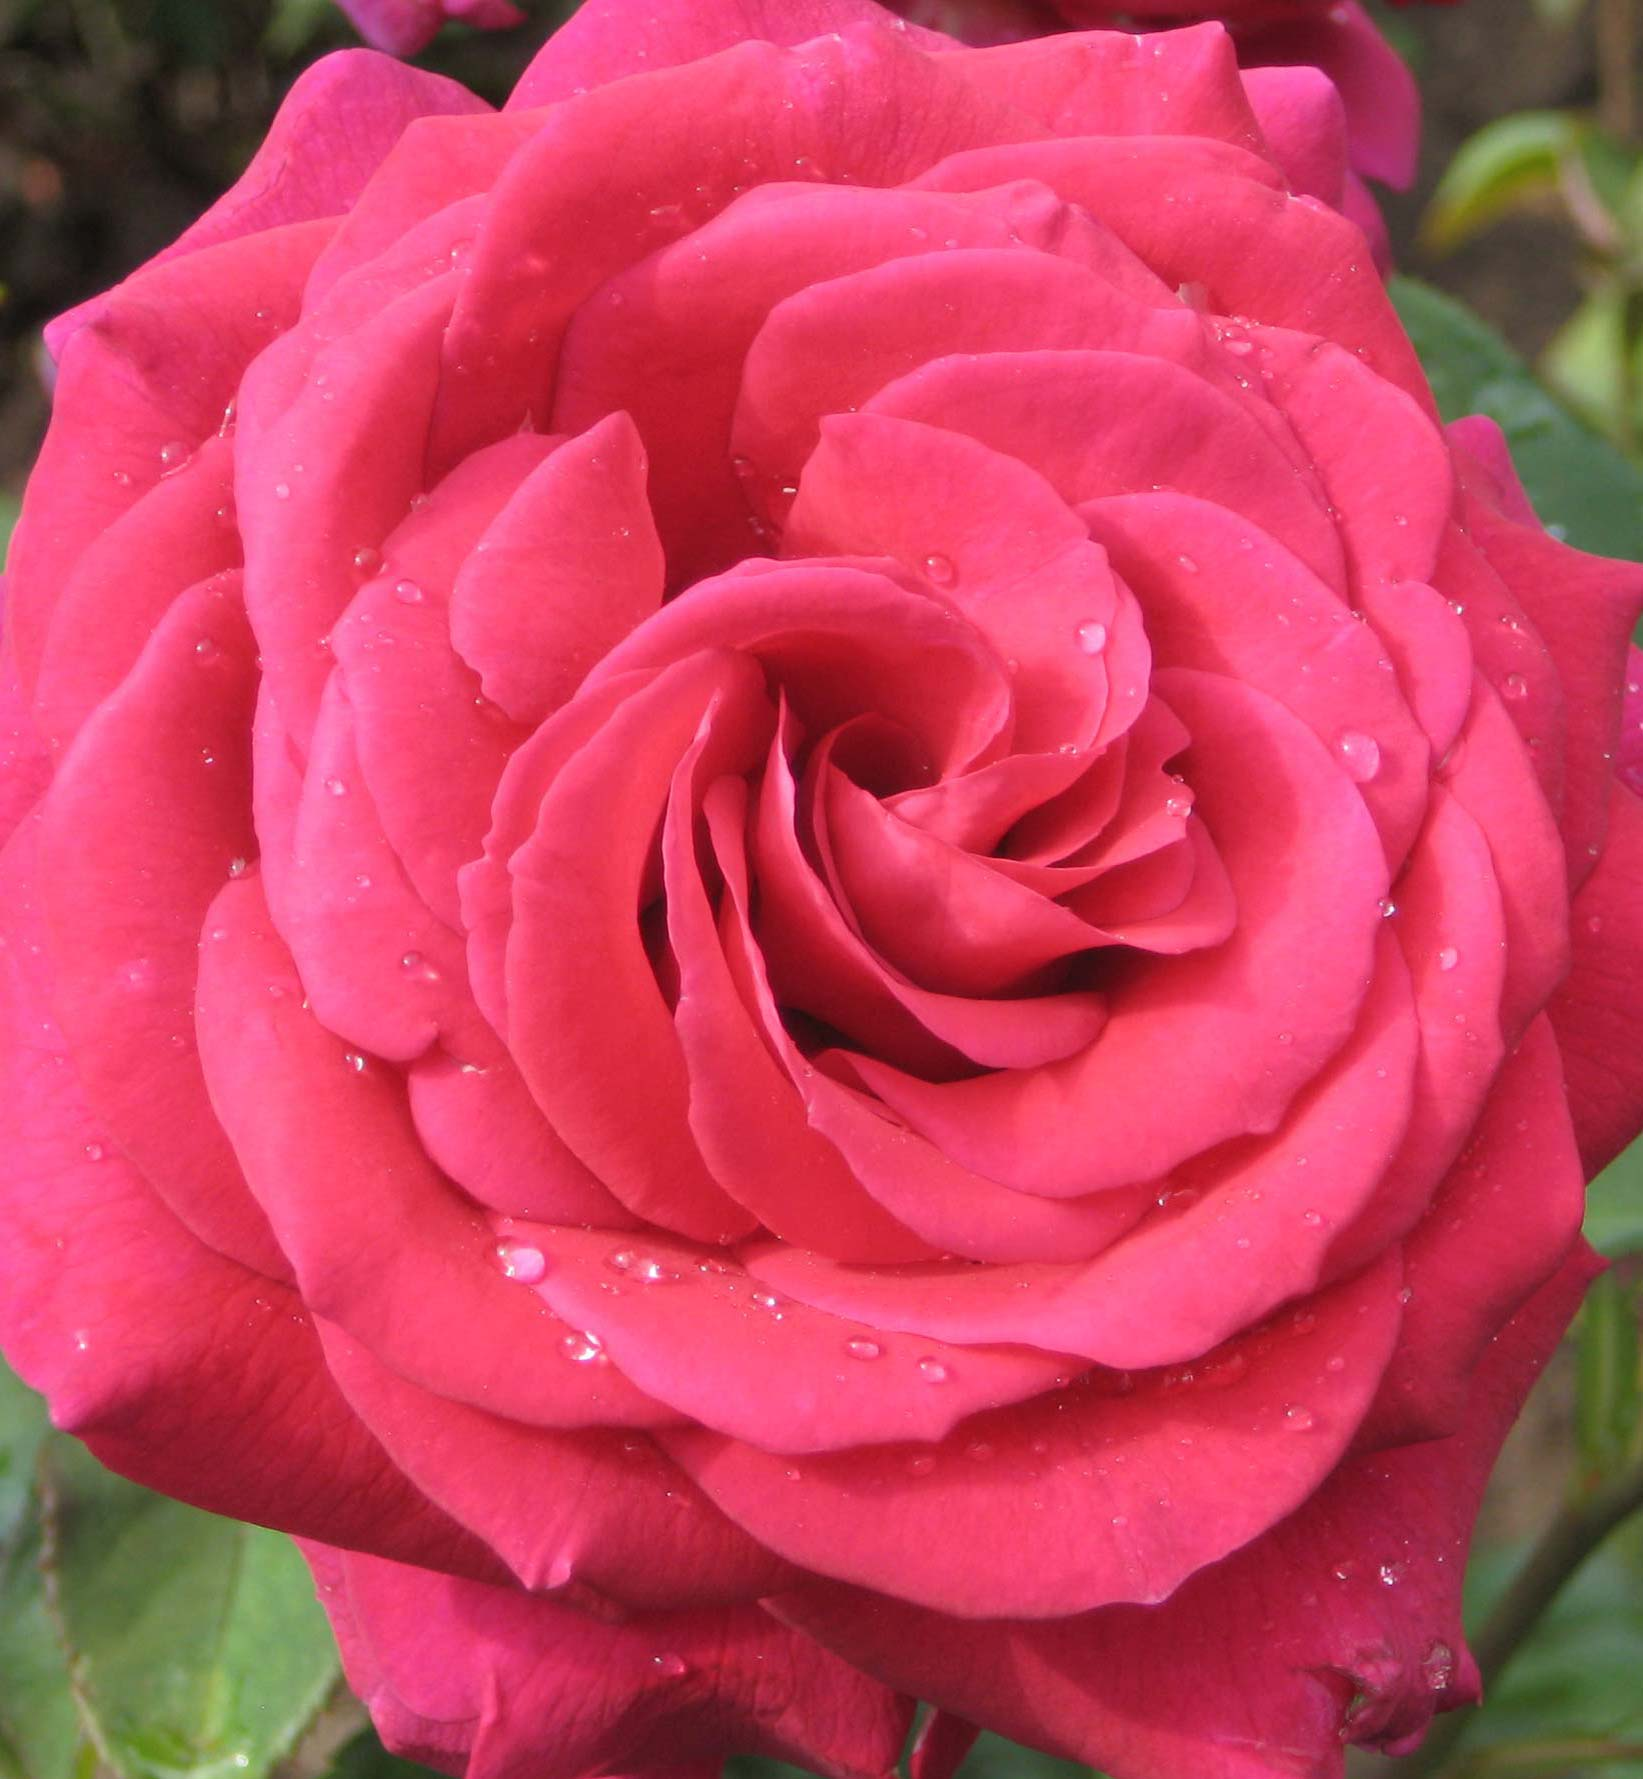 roses - photo #9